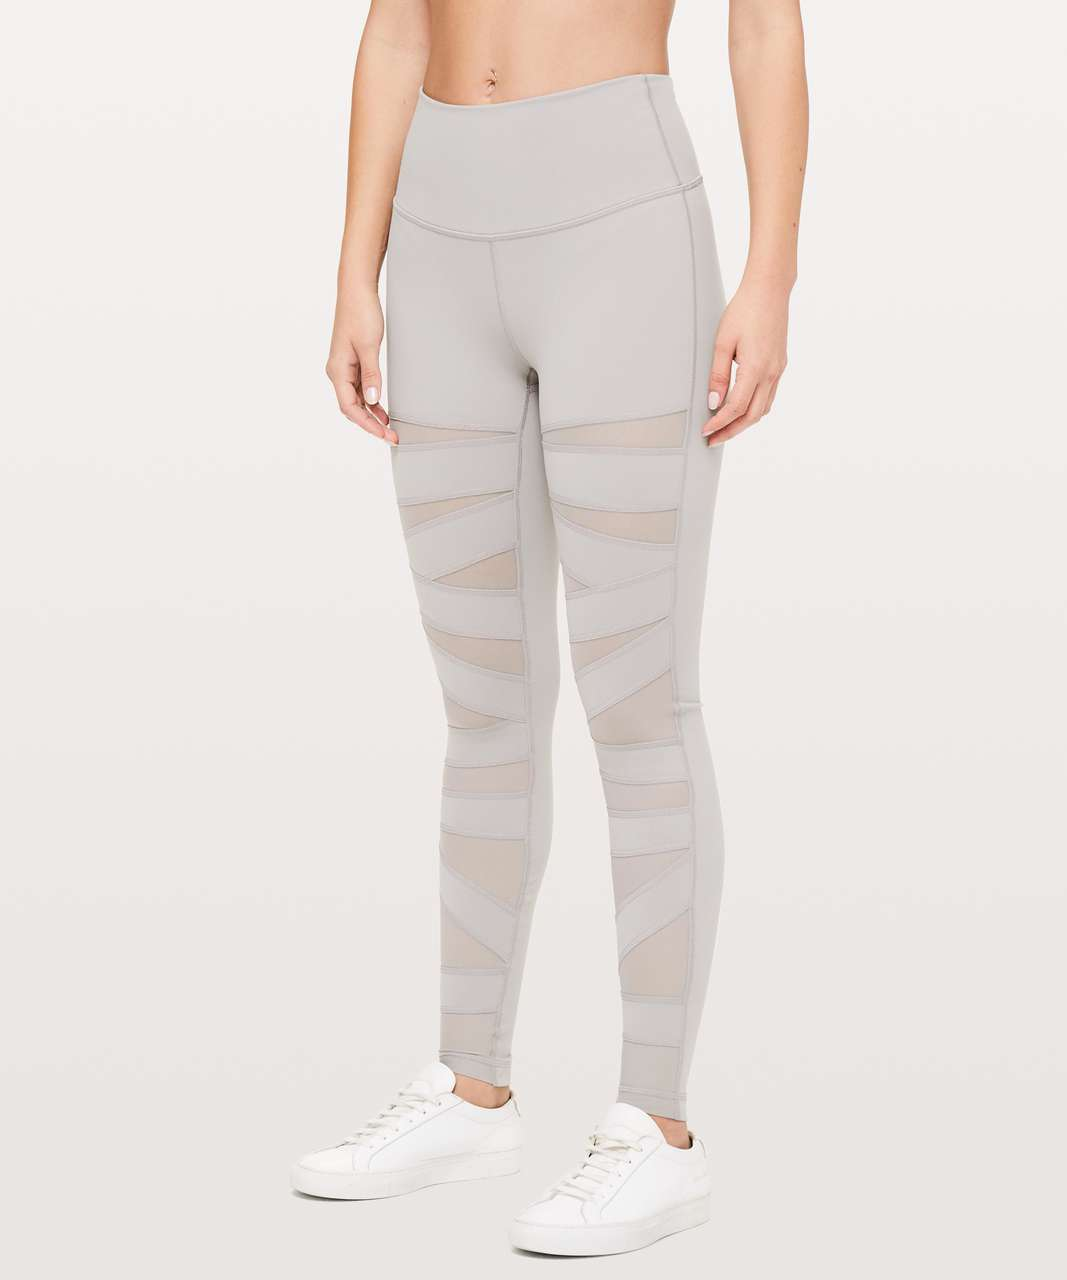 "Lululemon Wunder Under Pant (High-Rise) *Tech Mesh 28"" - Dark Chrome"